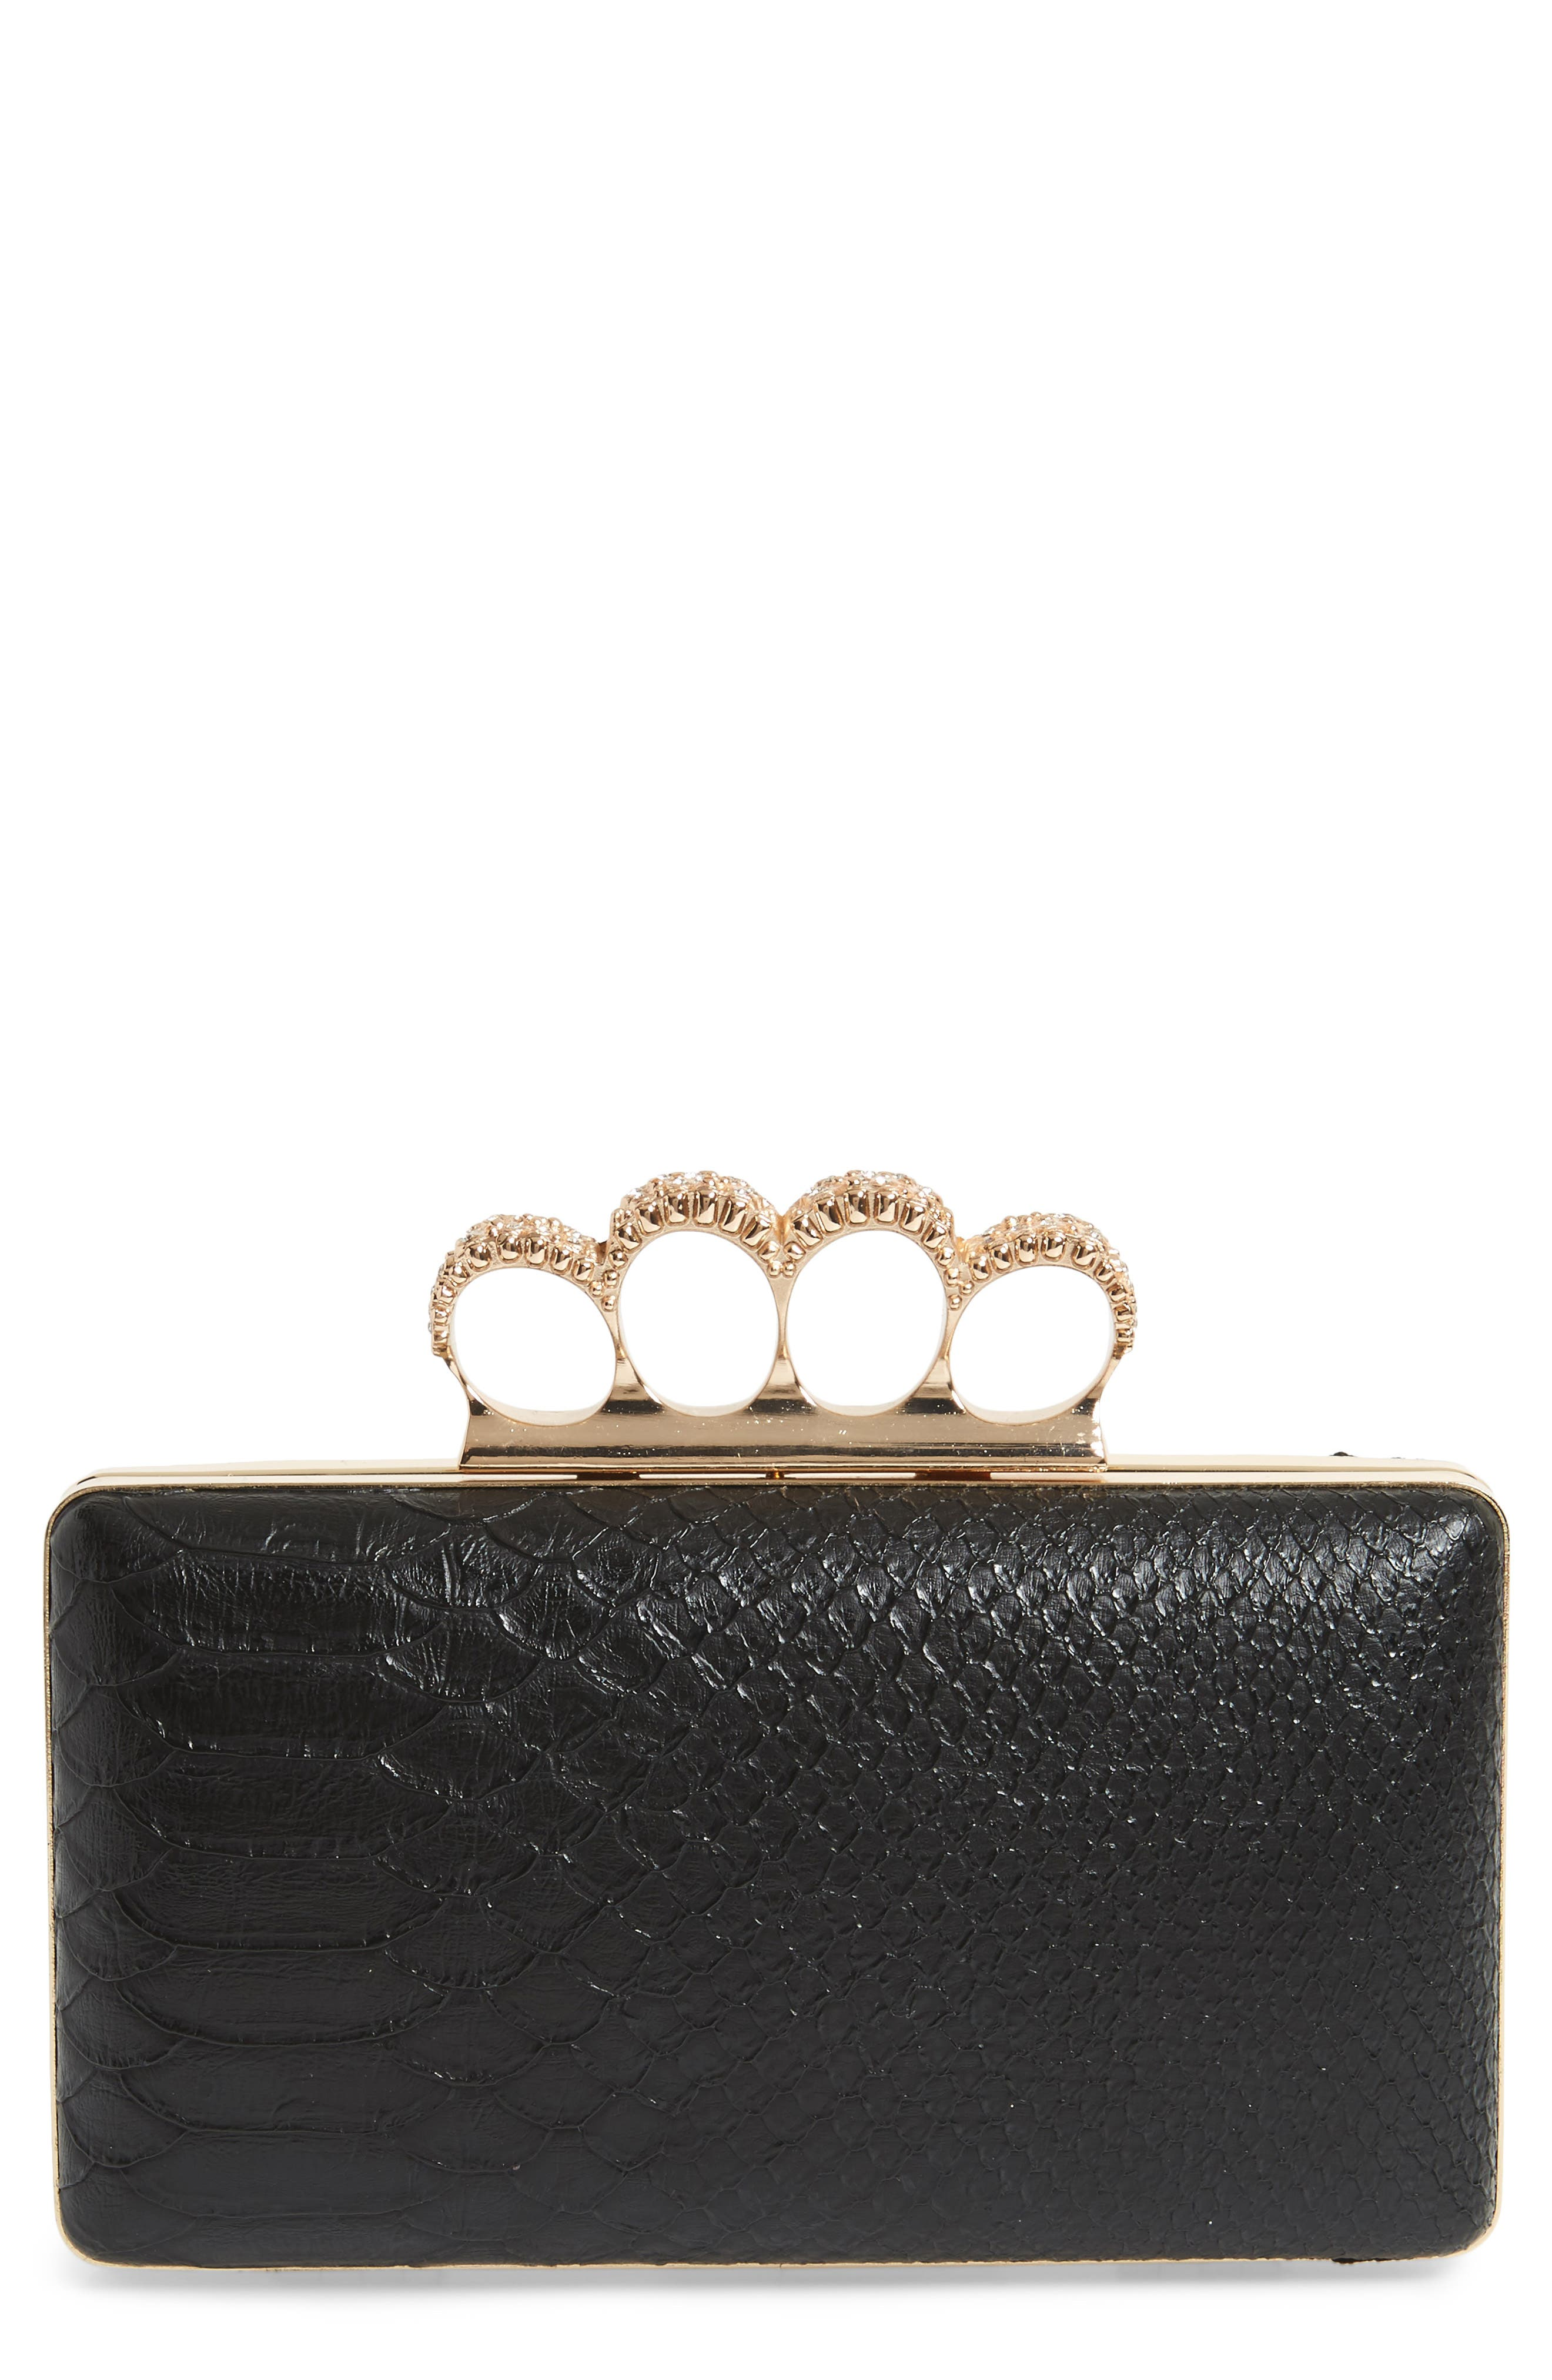 Knuckle Box Clutch,                             Main thumbnail 1, color,                             Gold/ Black